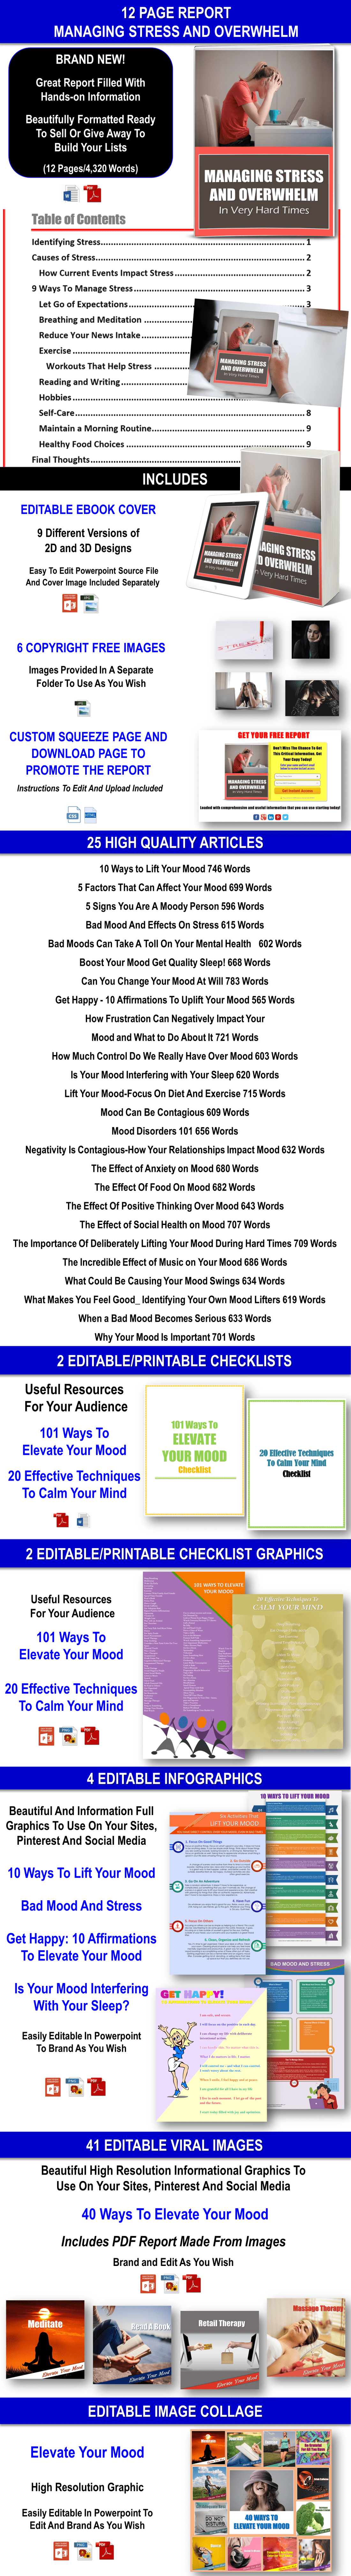 Elevate Your Mood: Get Through Difficult Times Giant Content with PLR Rights